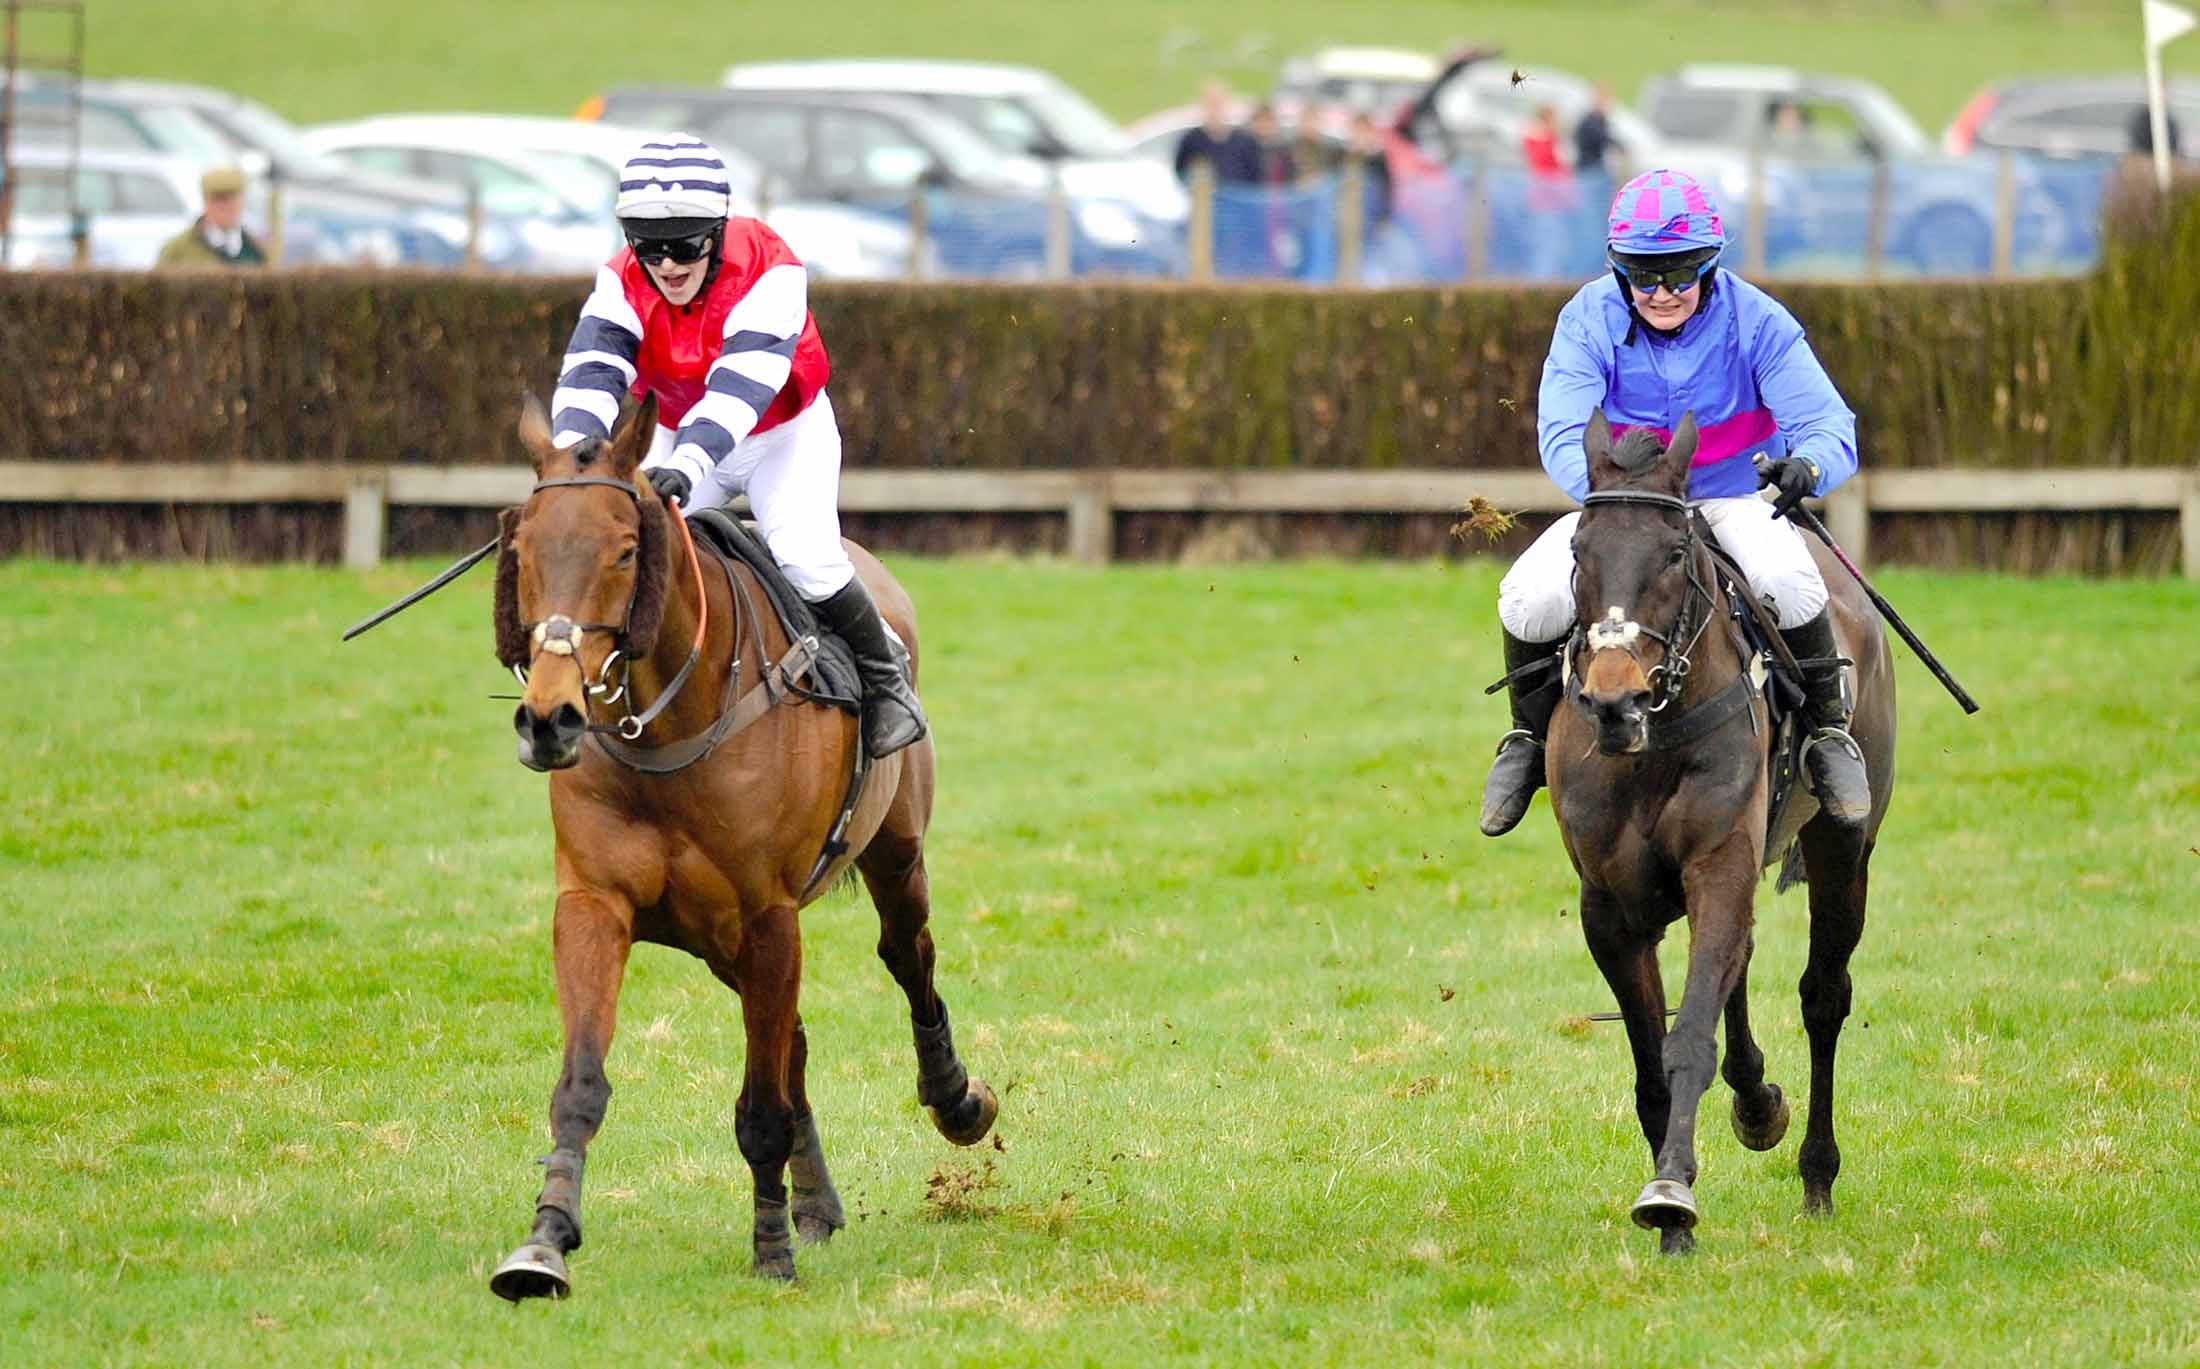 Point to Point returns bringing racing and fun for everyone